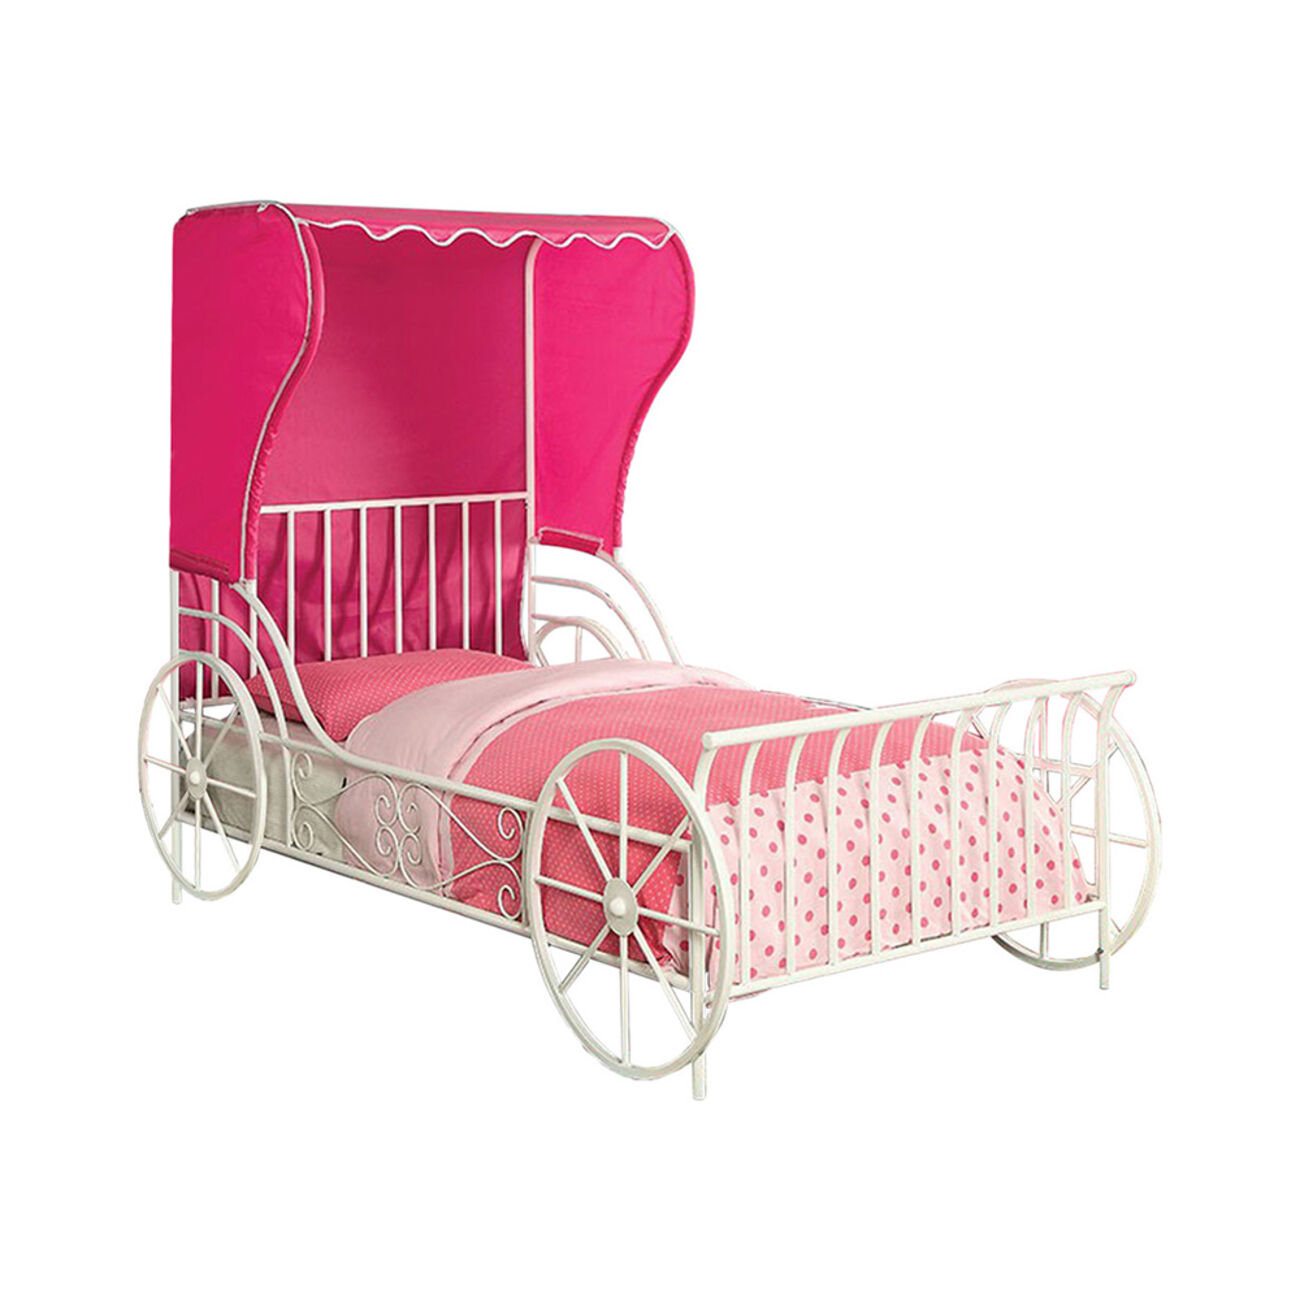 Twin Size Metal Carriage Bed With Pink Wingback Tent, White